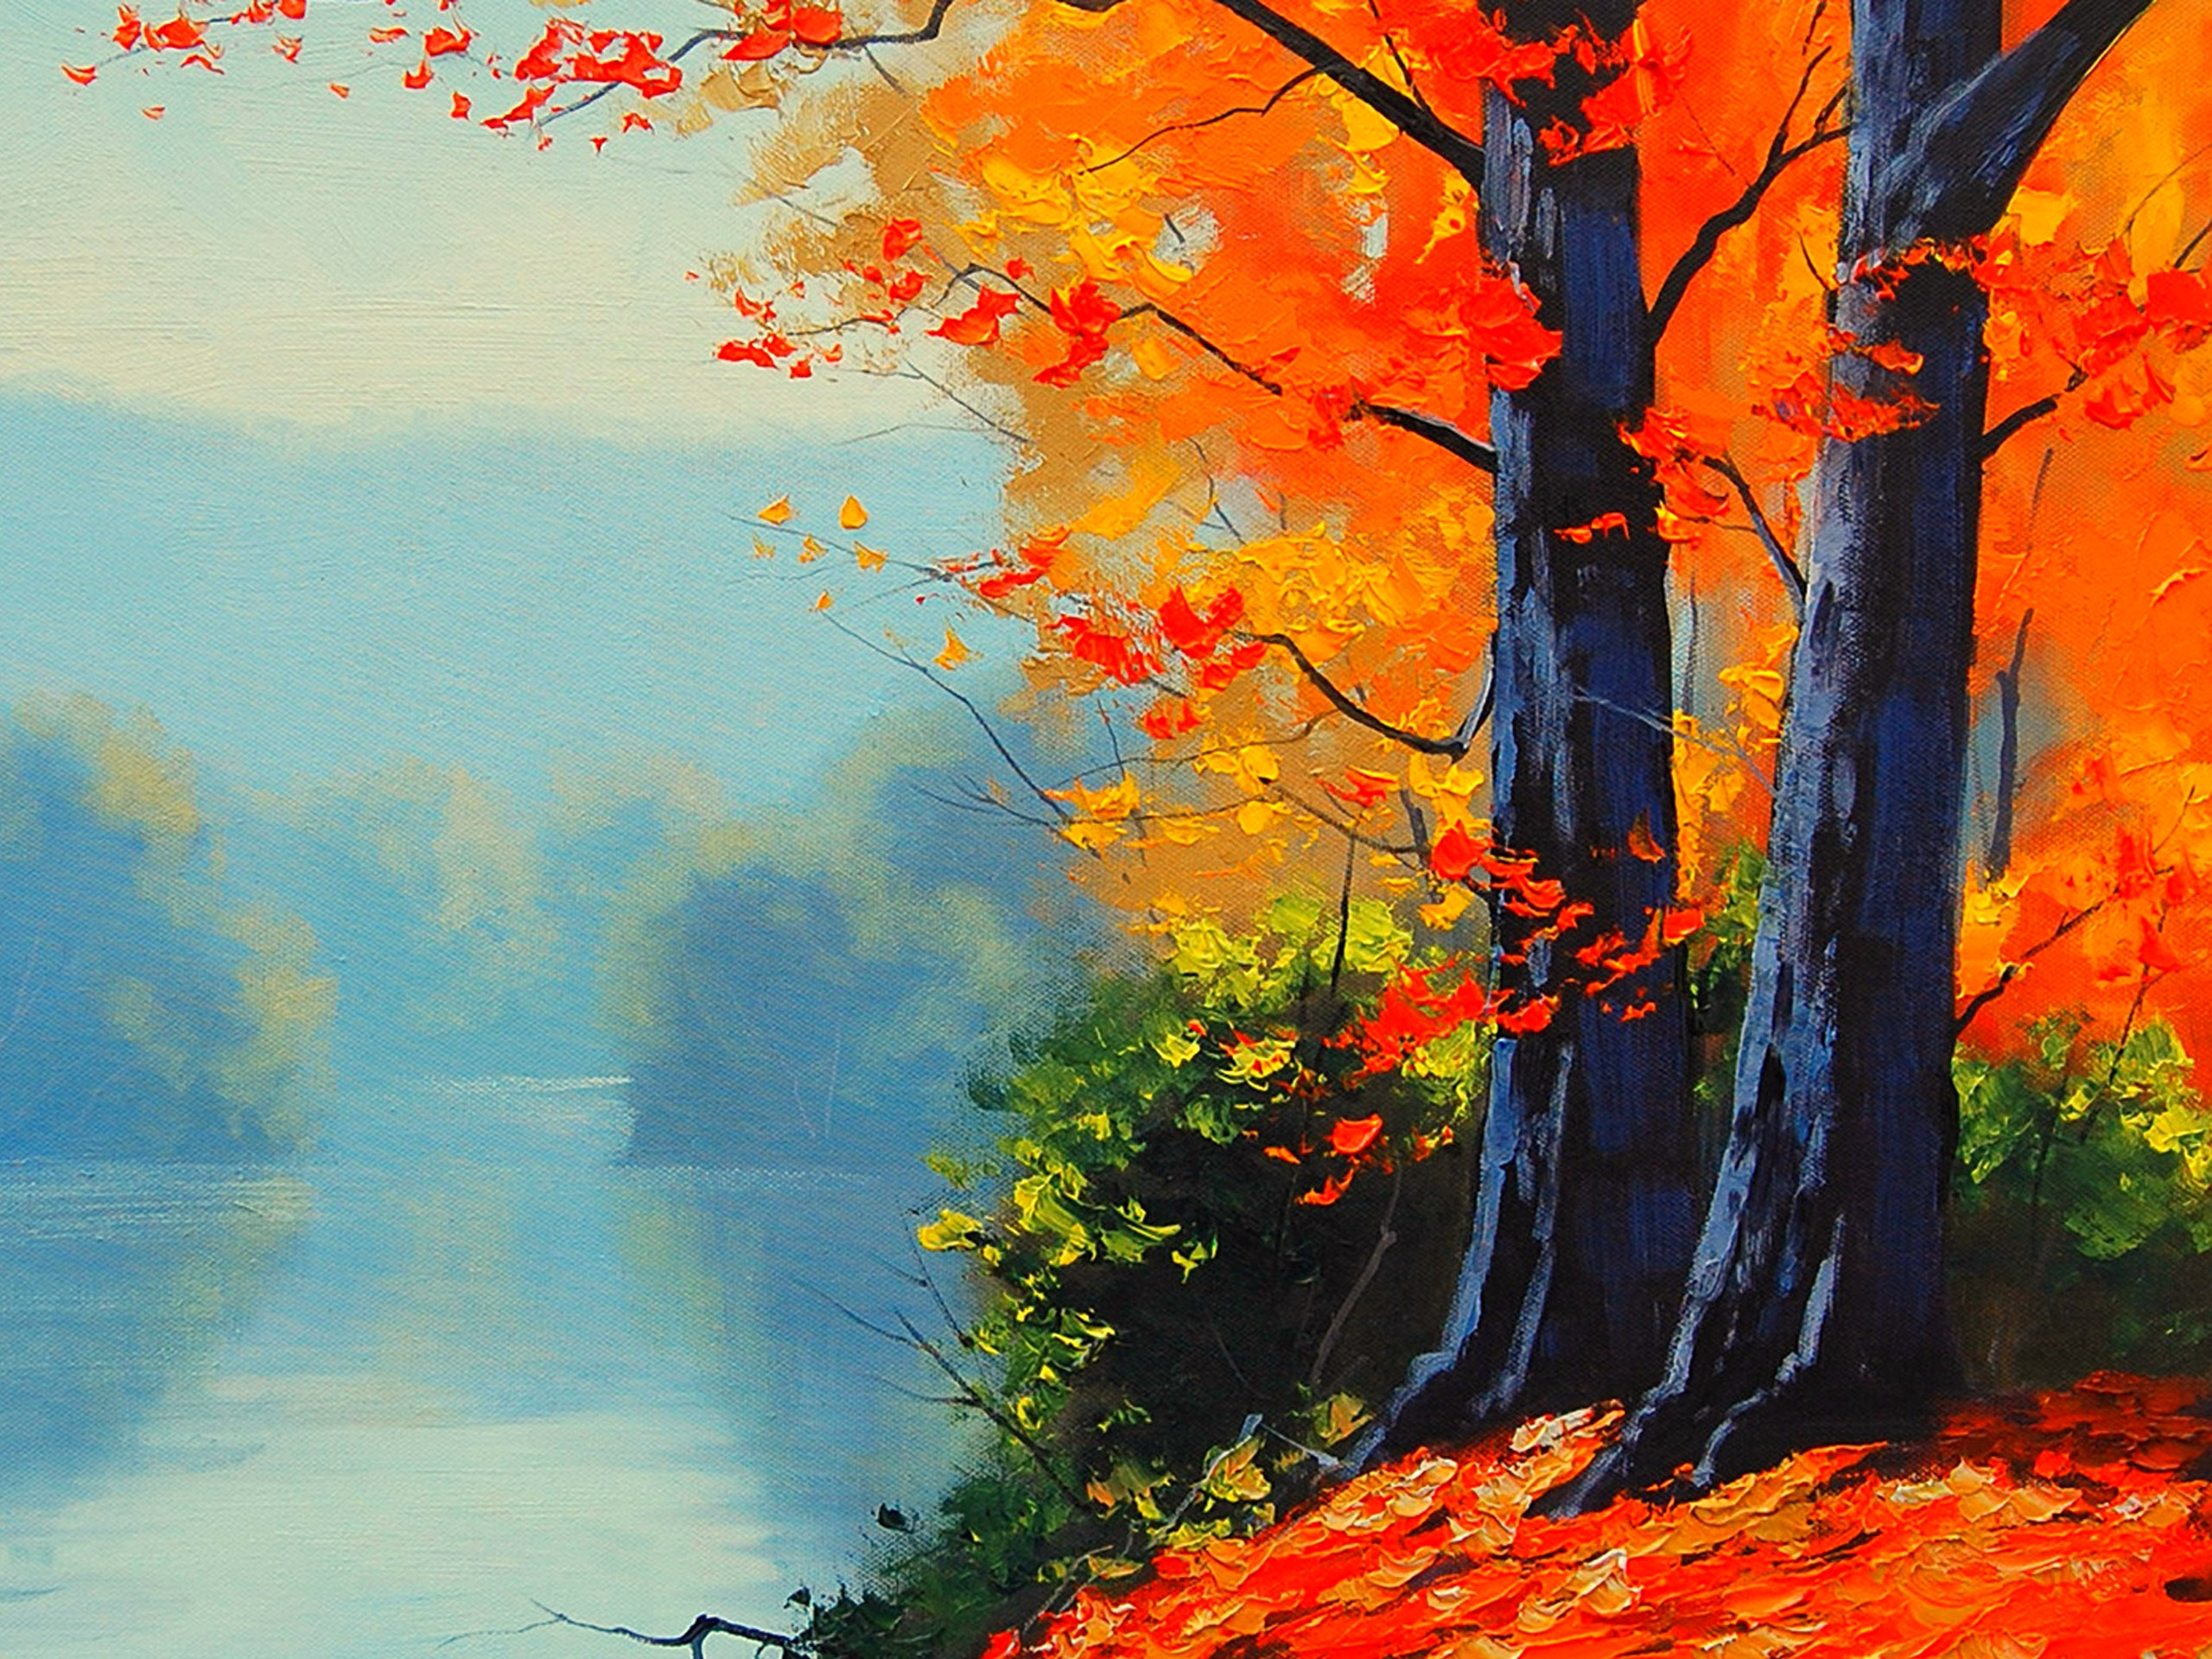 20 Hd Art Painting Wallpapers